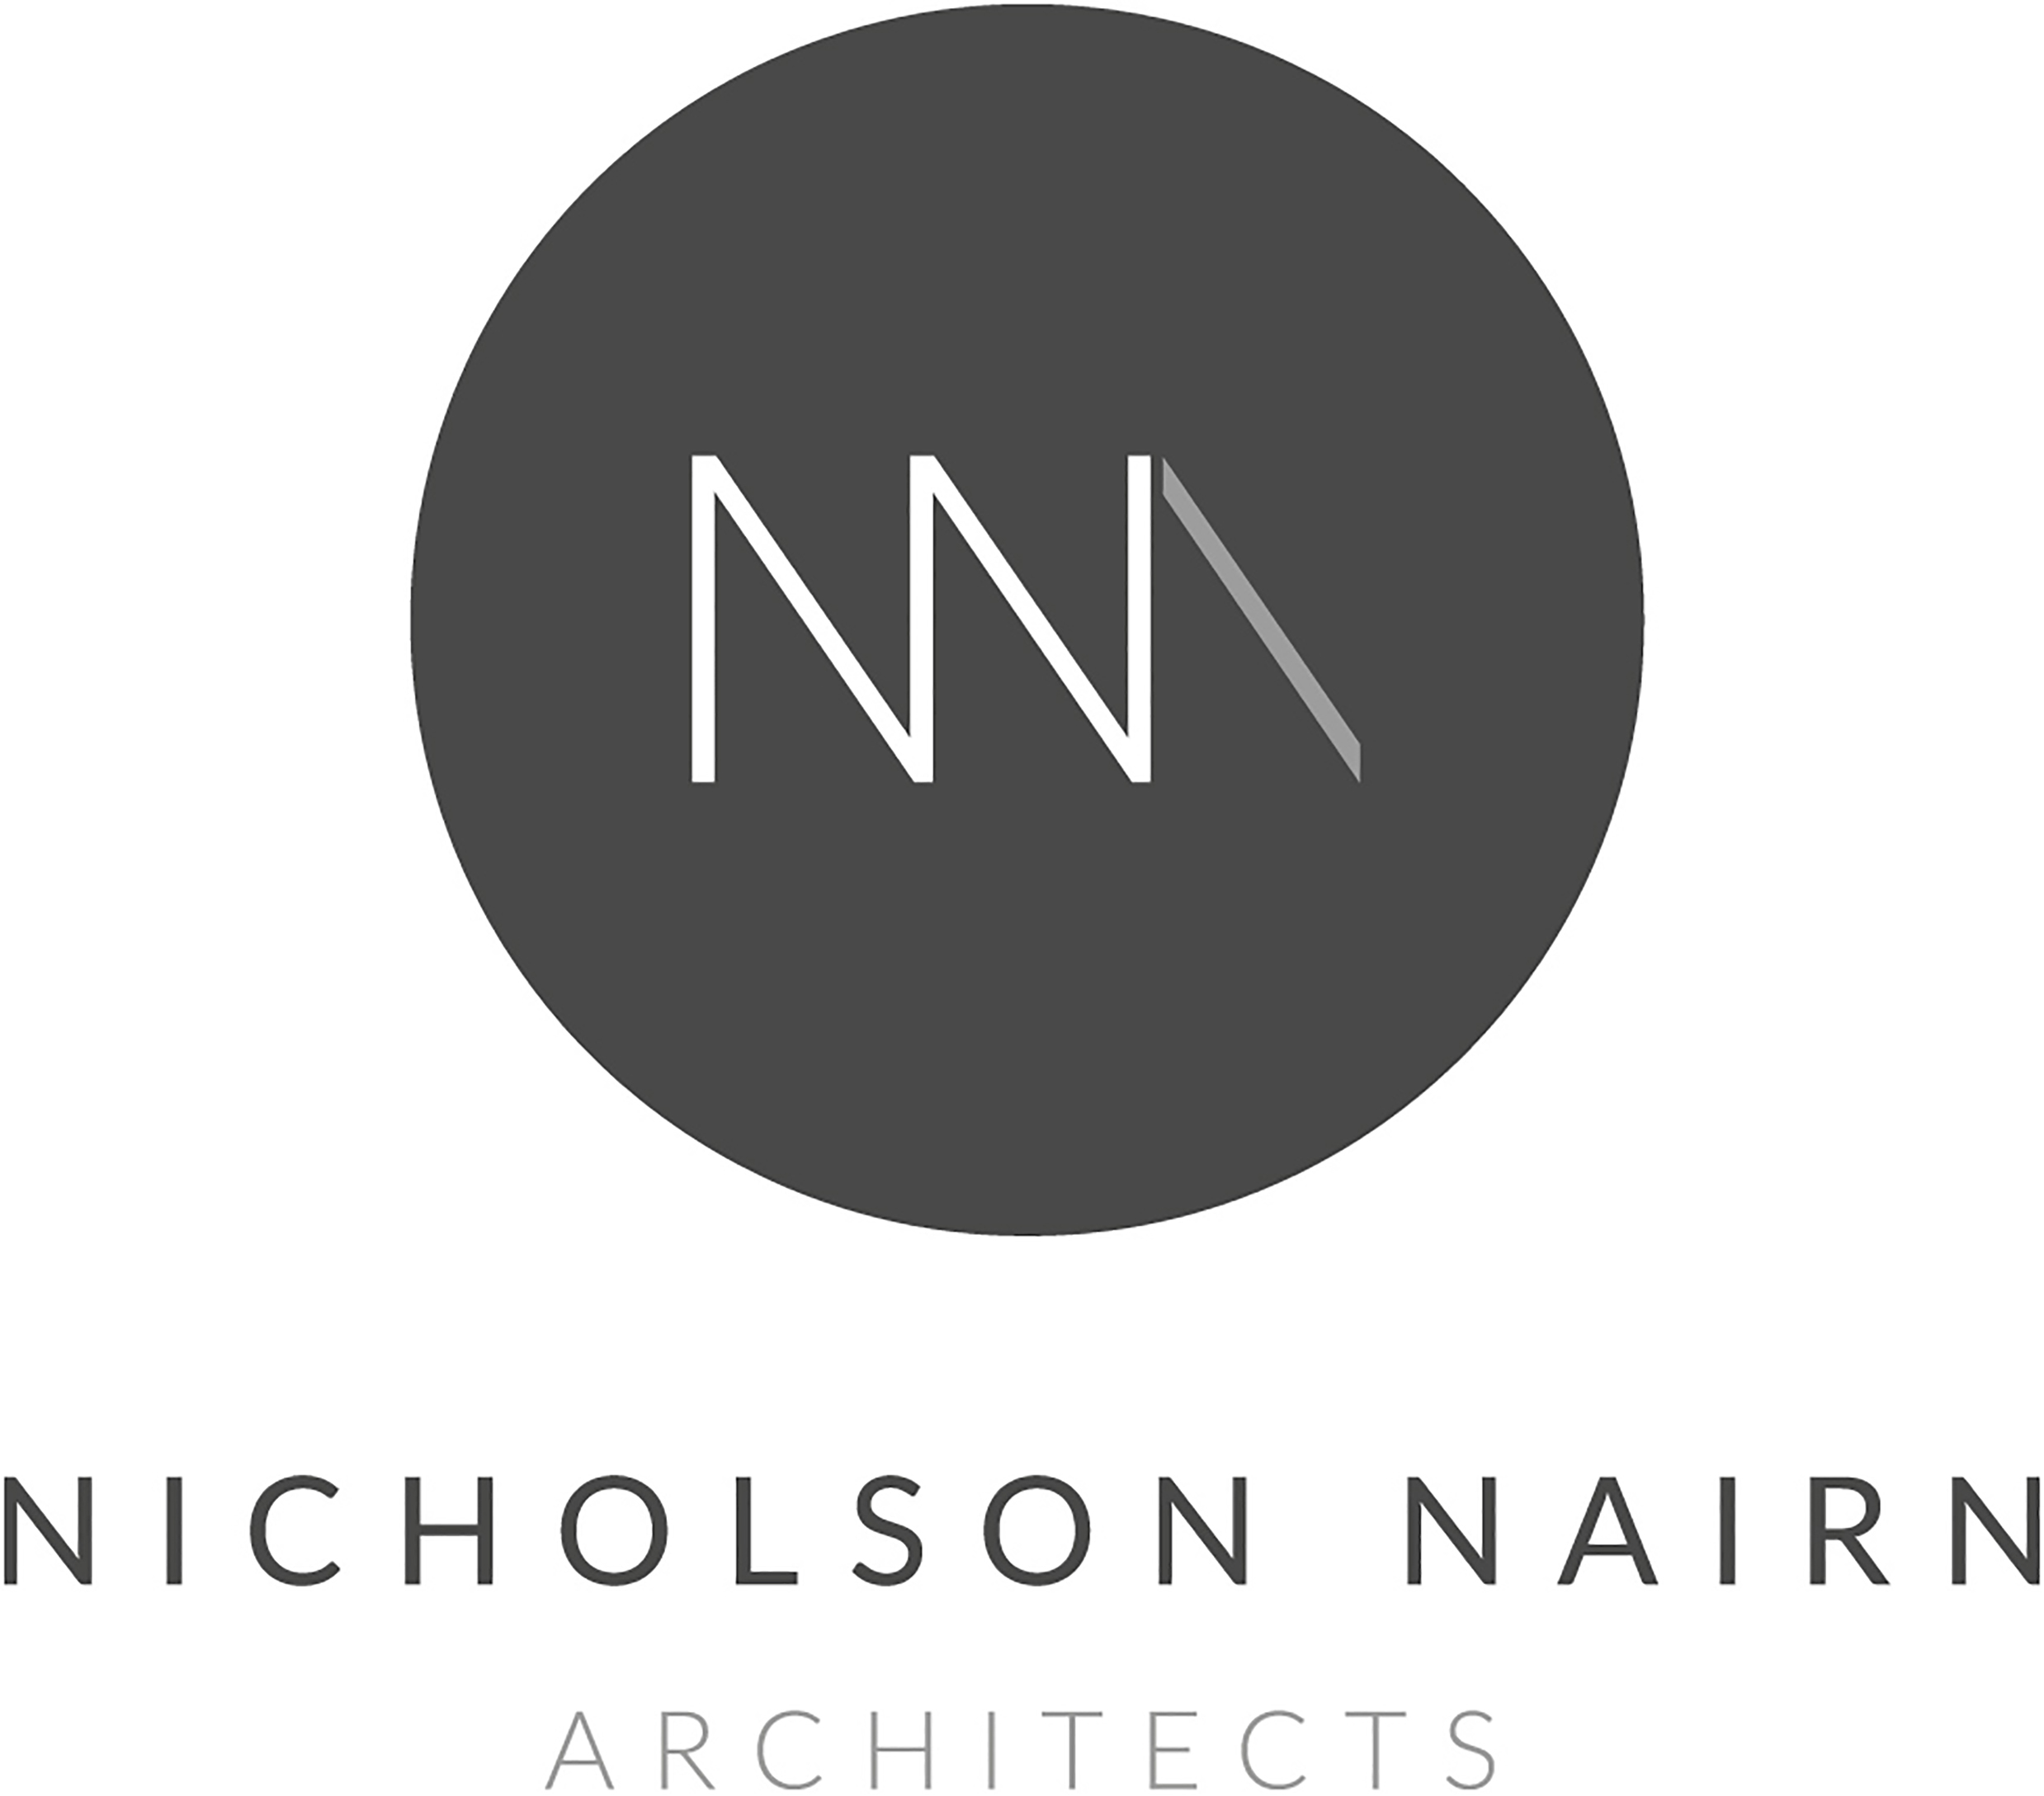 Nicholson Nairn Architects